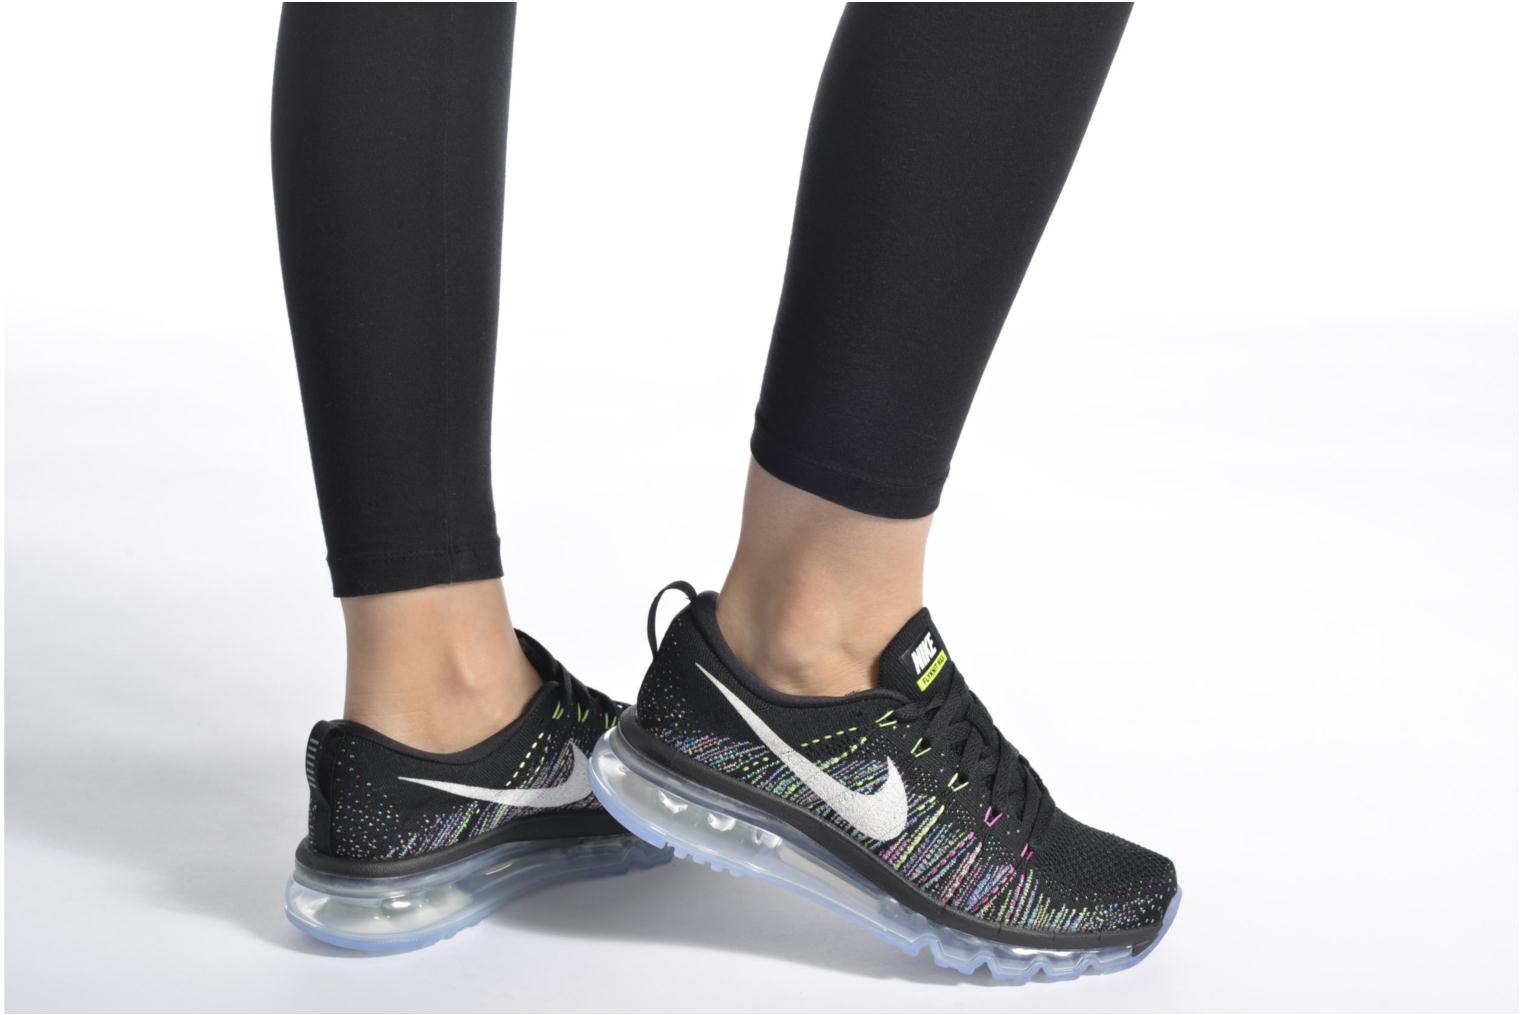 Wmns Nike Flyknit Max Black/Summit White-Ghost Green-Fire Pink